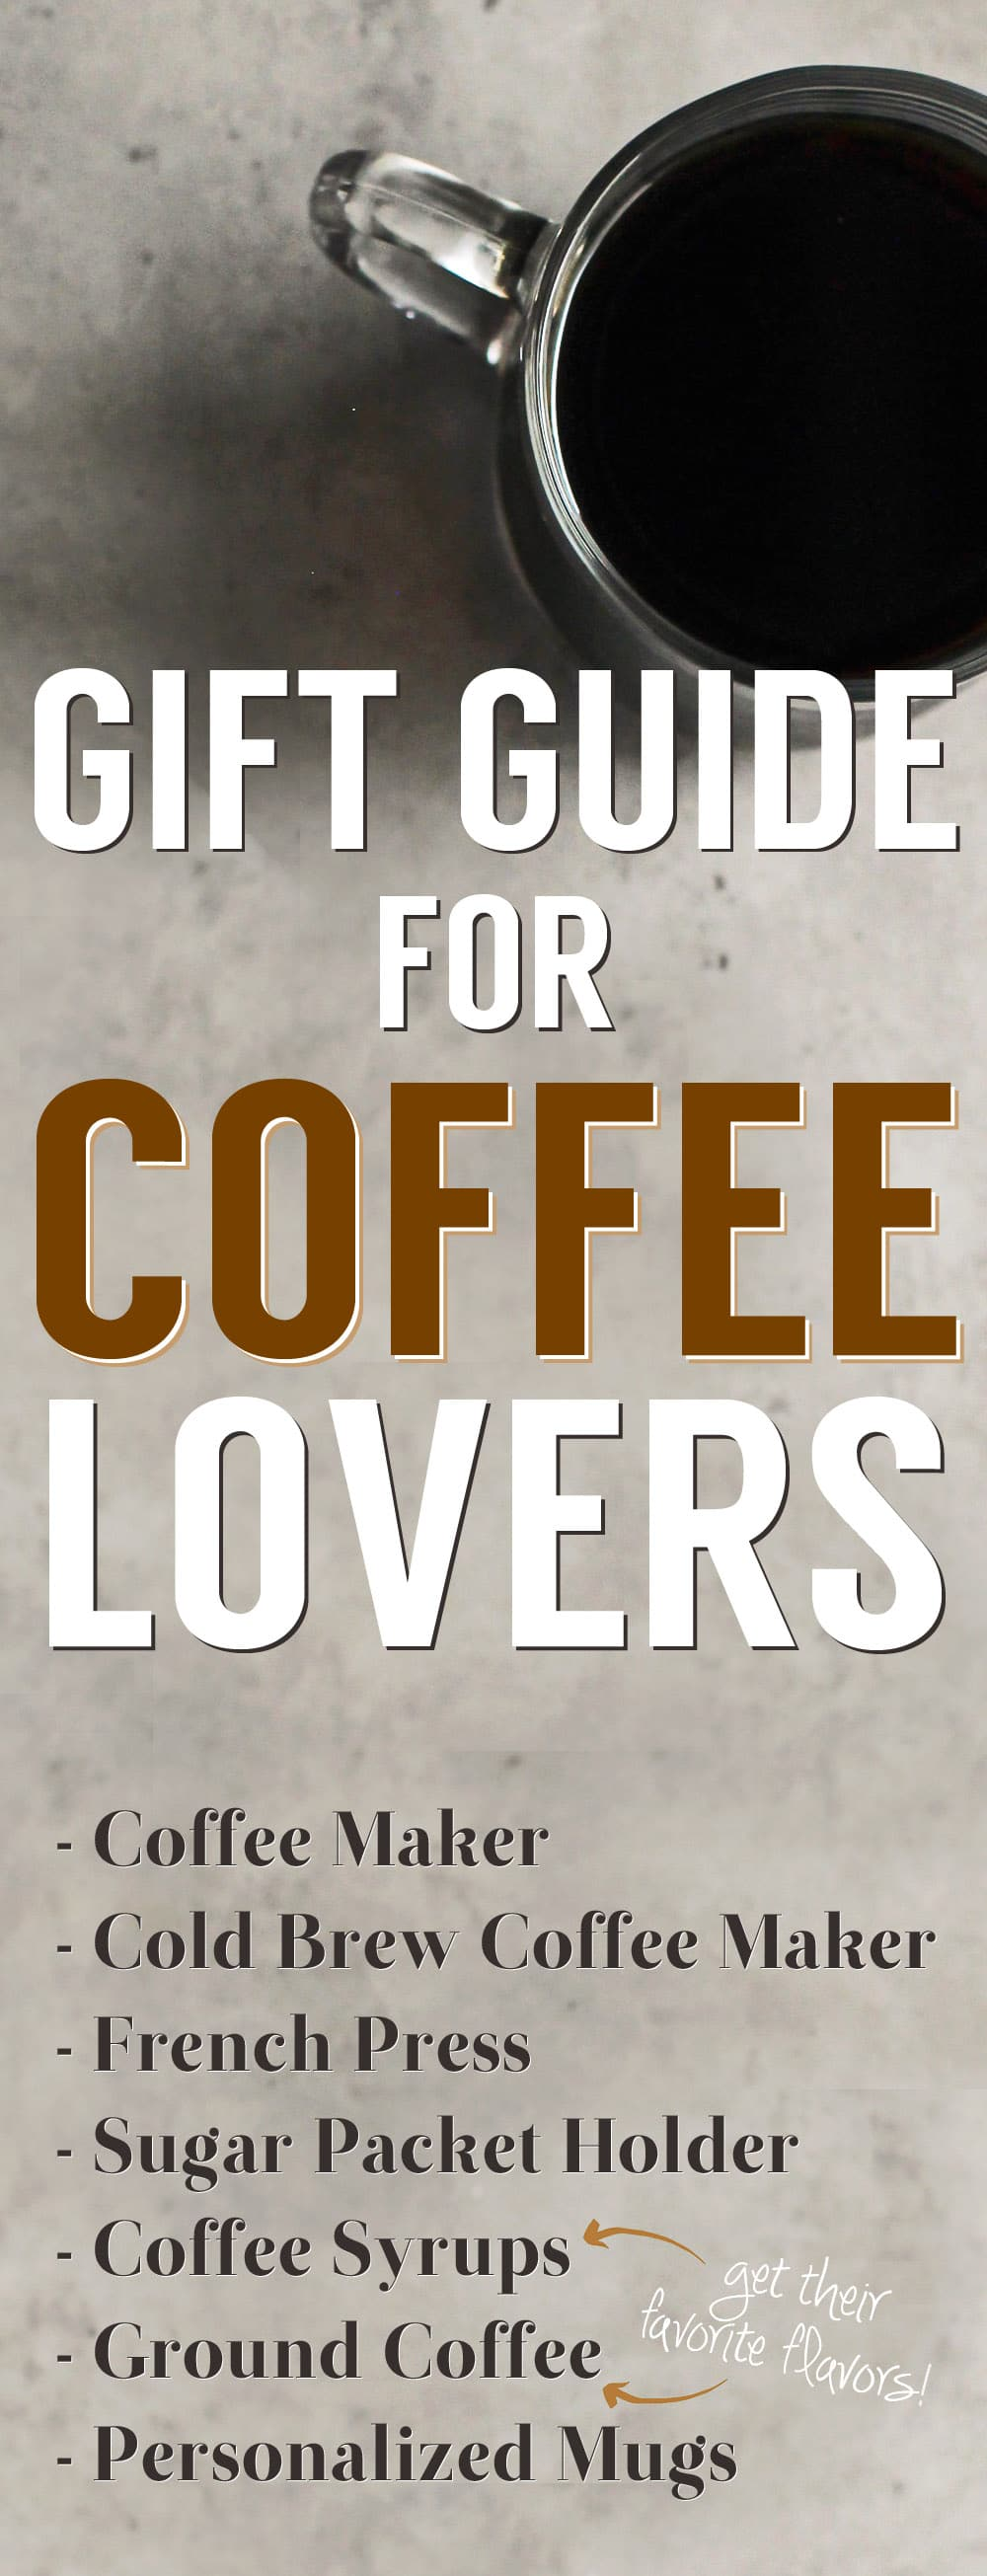 Gift Guide for Coffee Lovers from the Desserts With Benefits Blog (www.DessertsWithBenefits.com)